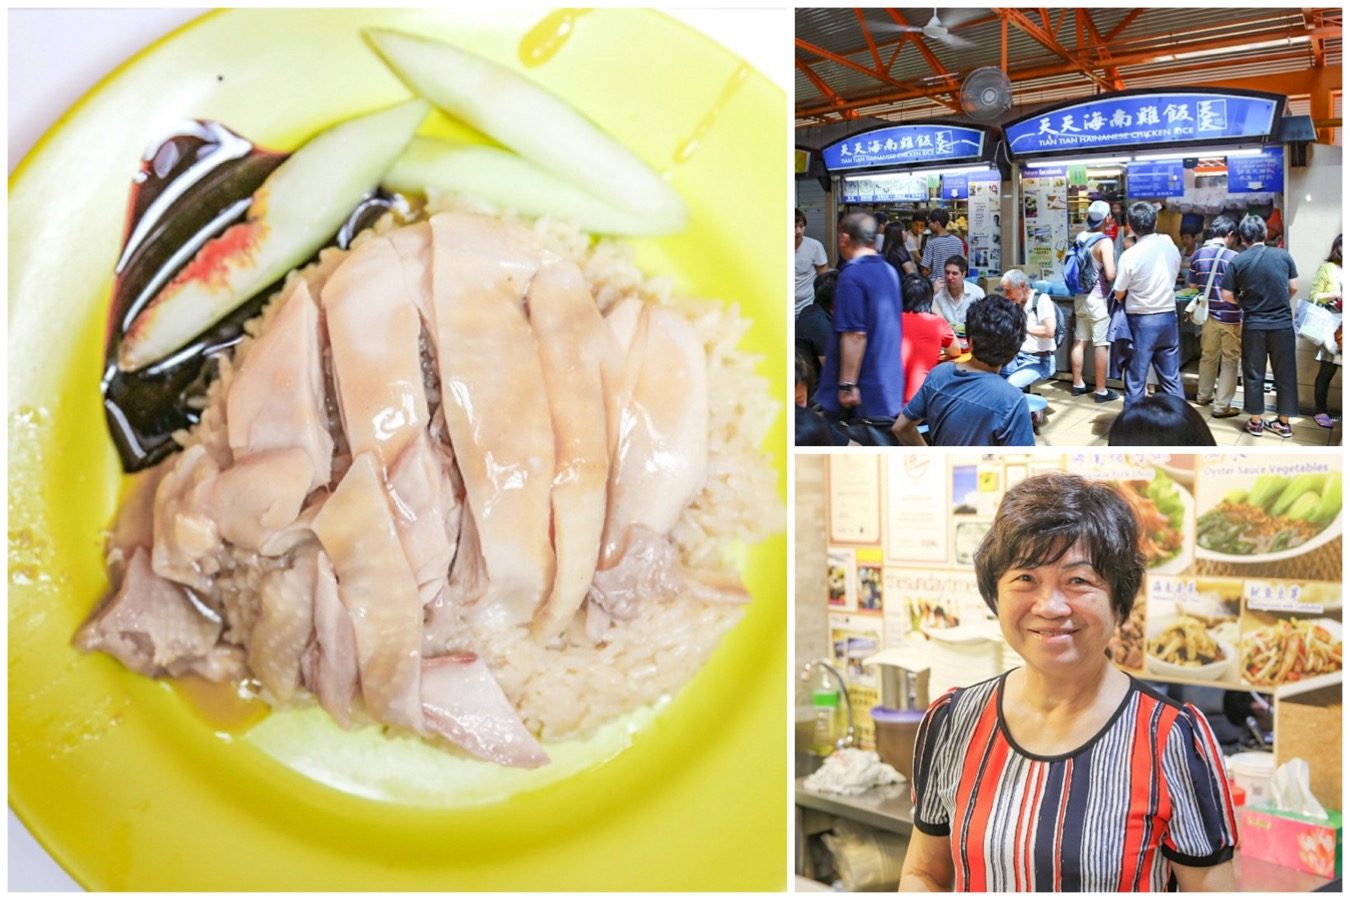 Tian Tian Hainanese Chicken Rice - Singapore's Famed Chicken Rice Stall At Maxwell Food Centre, With Michelin Bib Gourmand